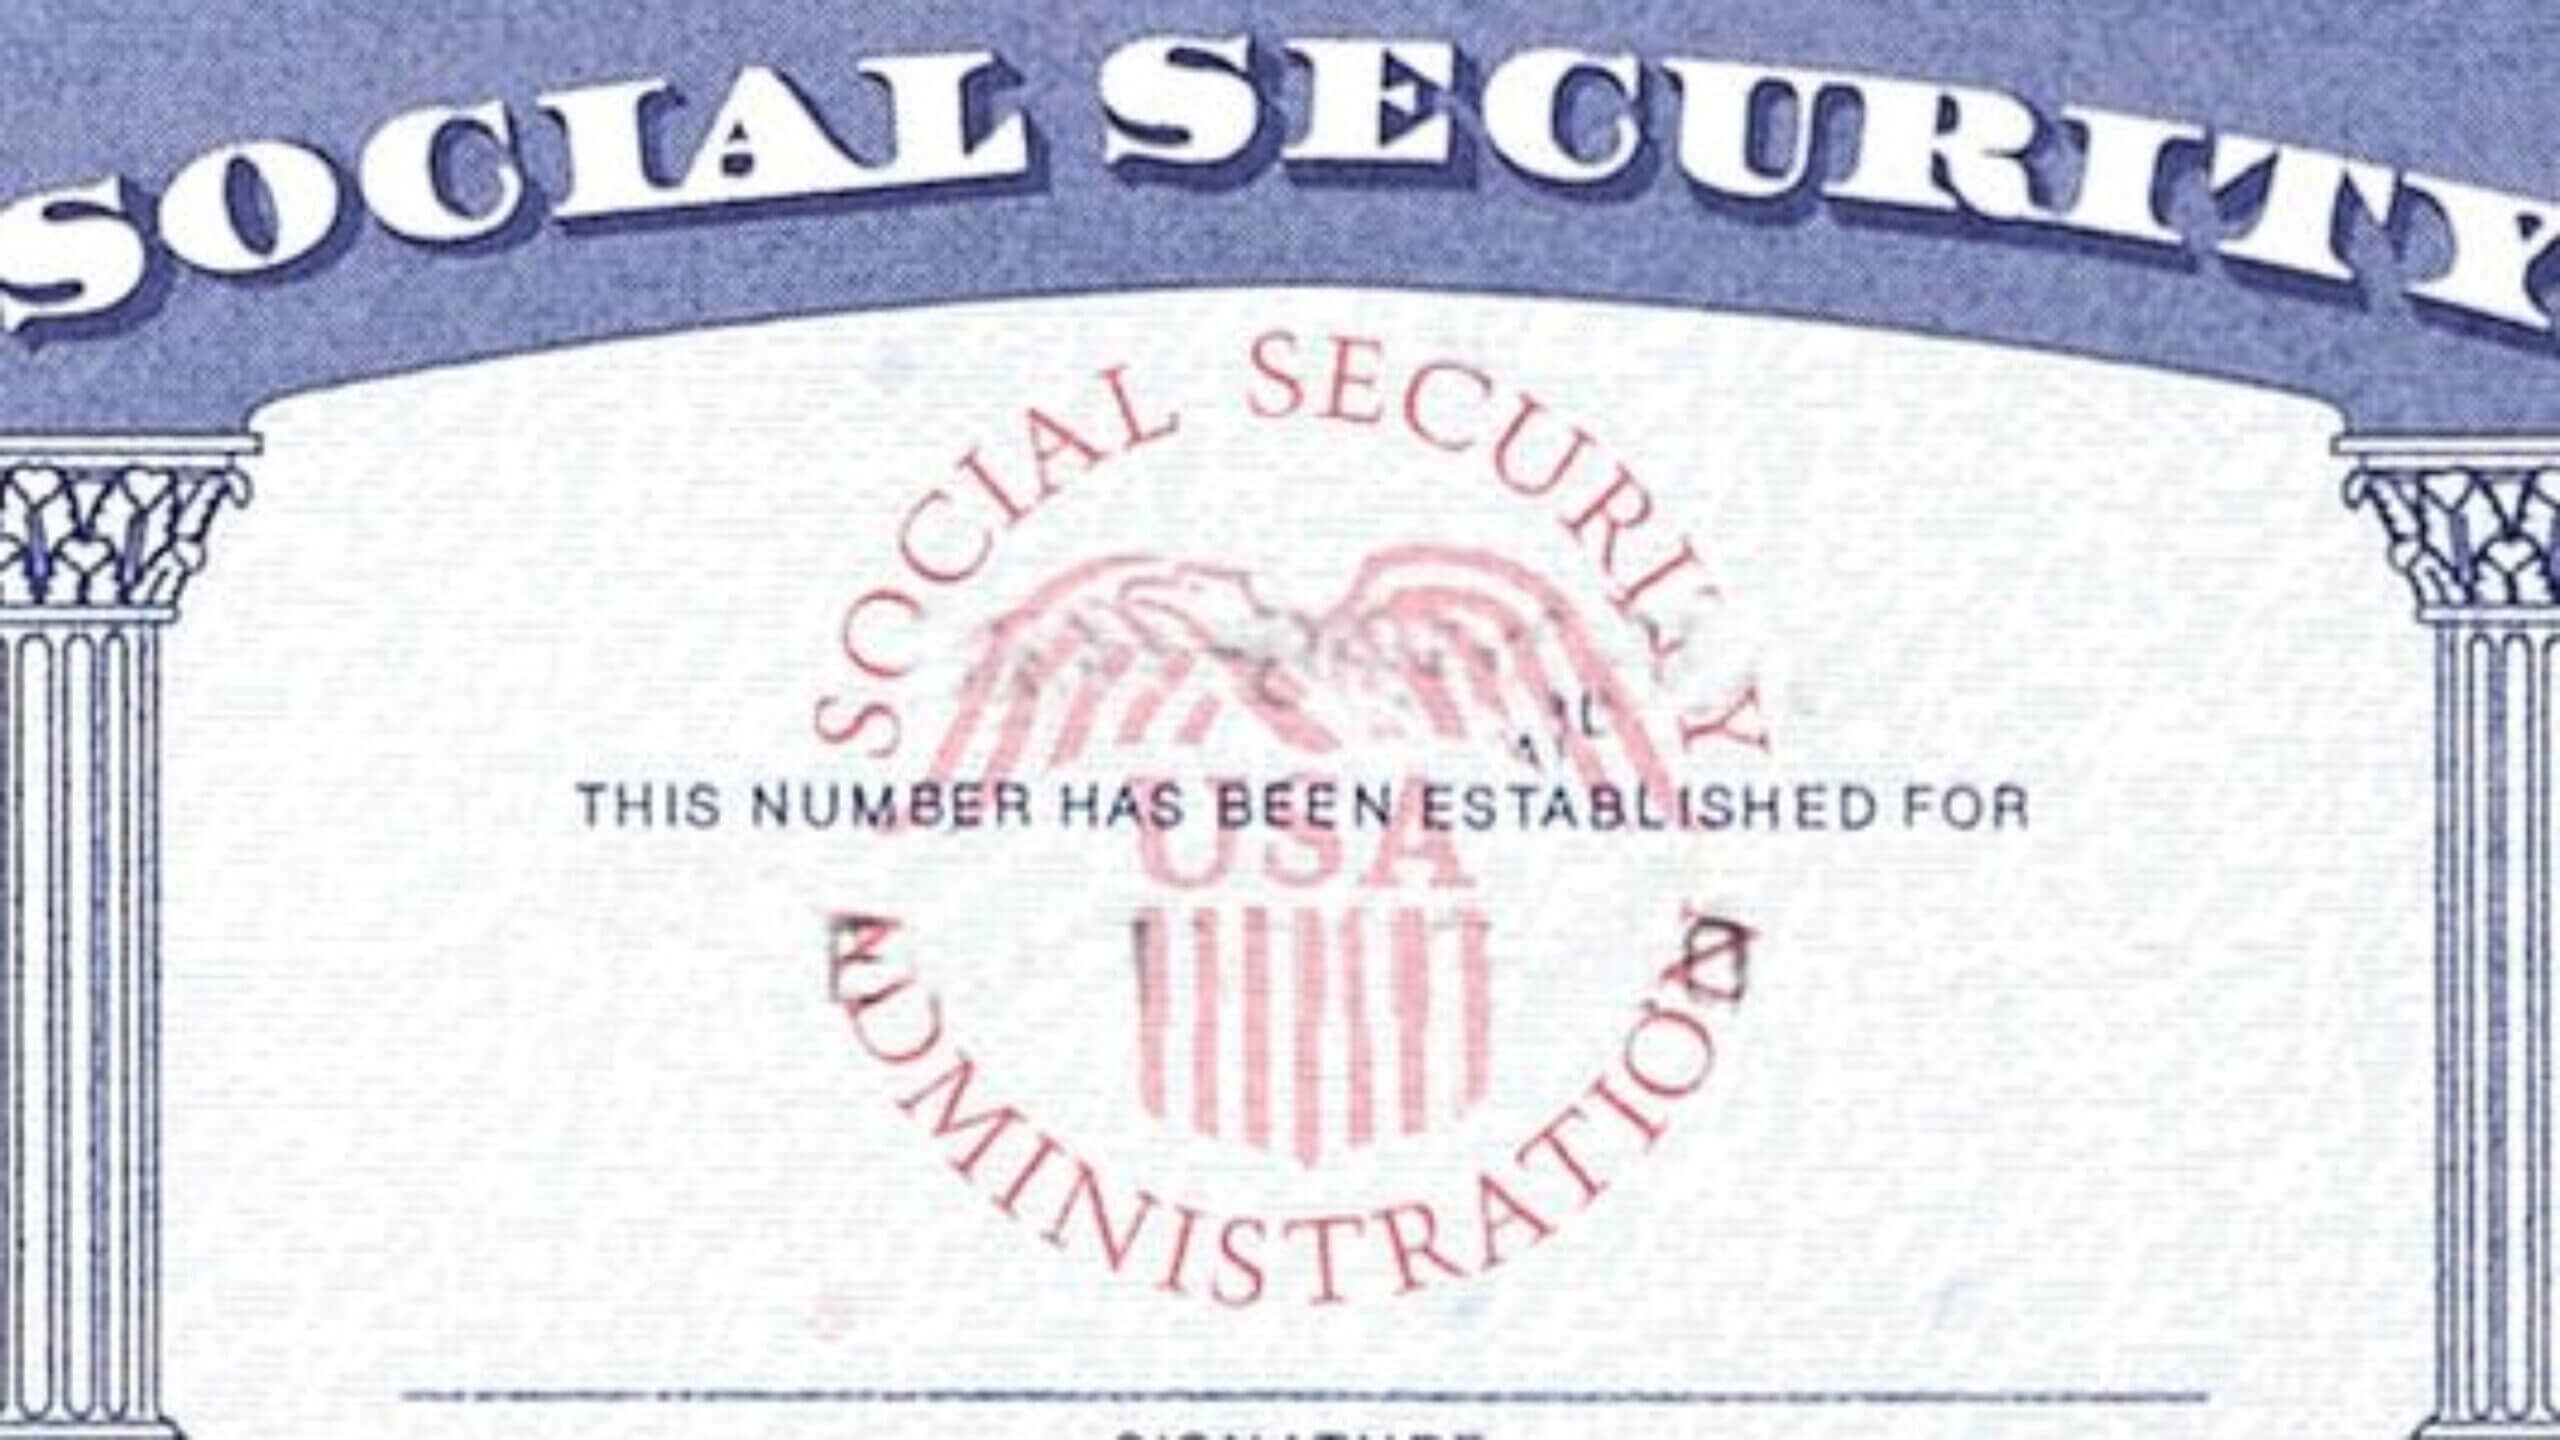 Blank Social Security Card Template Download - Great With Regard To Blank Social Security Card Template Download